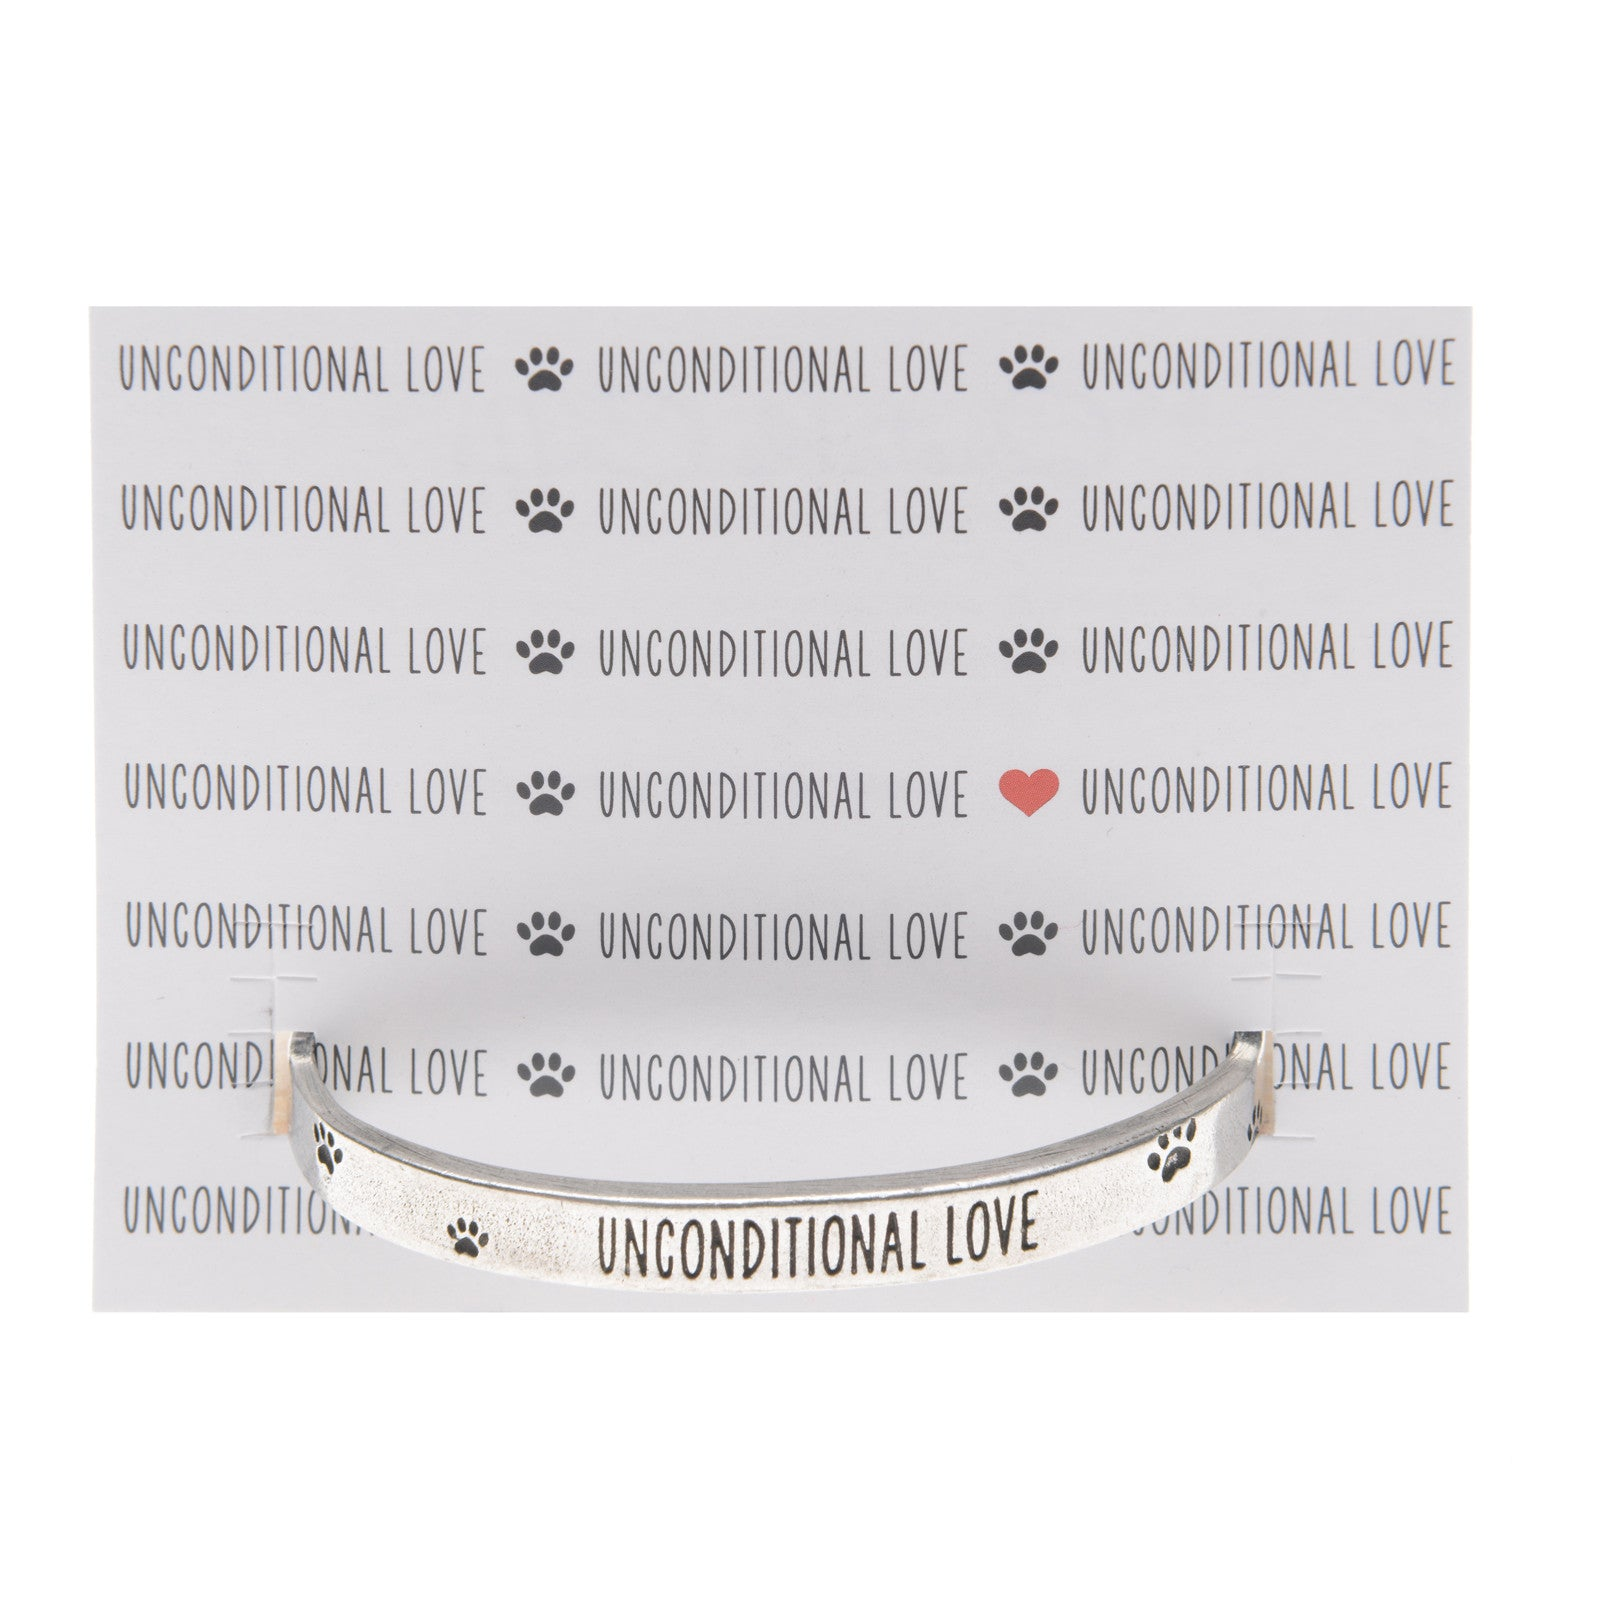 Unconditional Love Cuff Inspirational Jewelry Bracelet - Pet Sympathy Gift or Memorial by Quotable Cuffs - Whitney Howard Designs